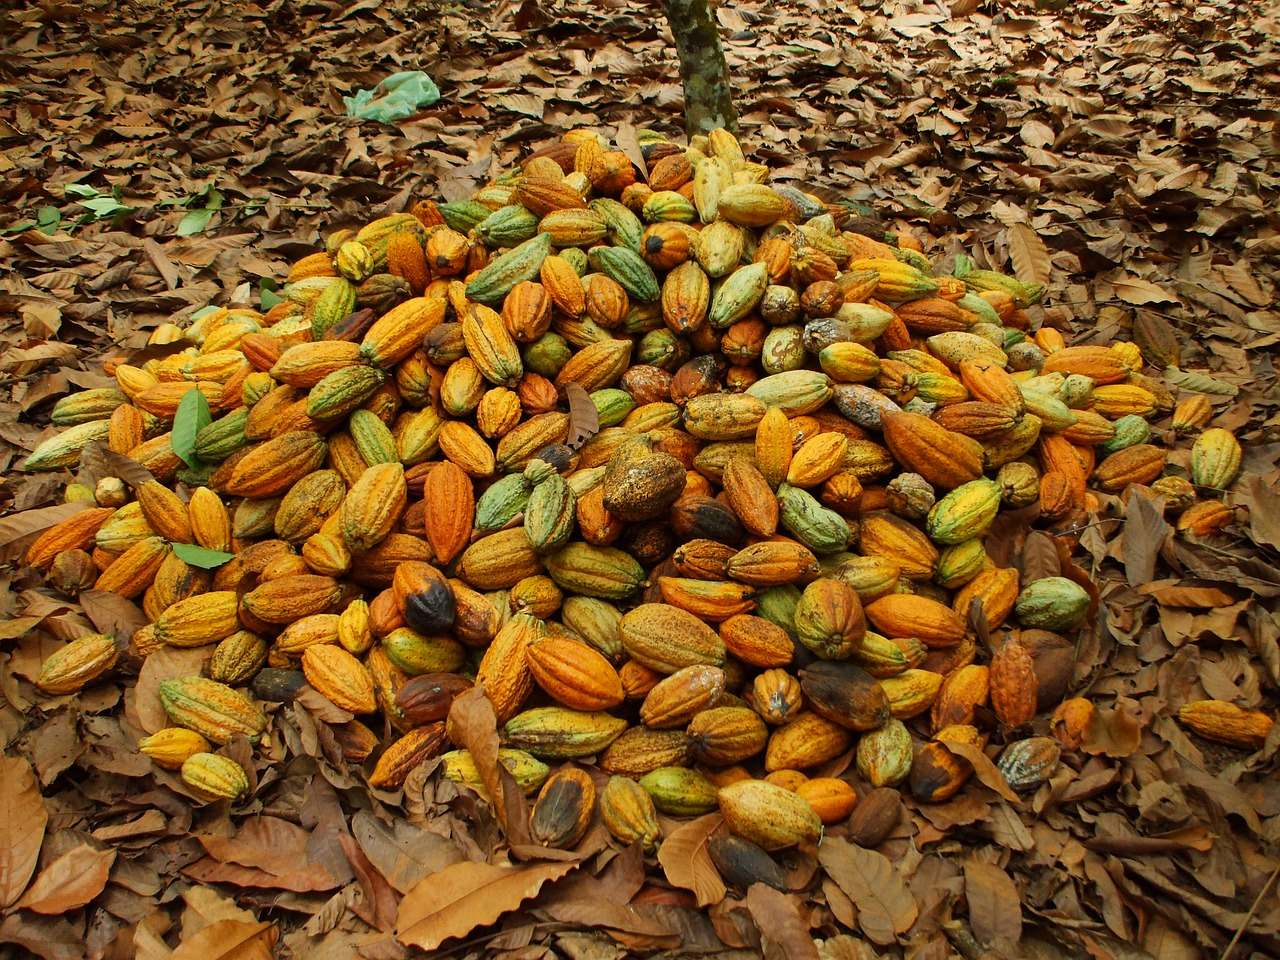 Nigeria : A productive place for Cocoa business